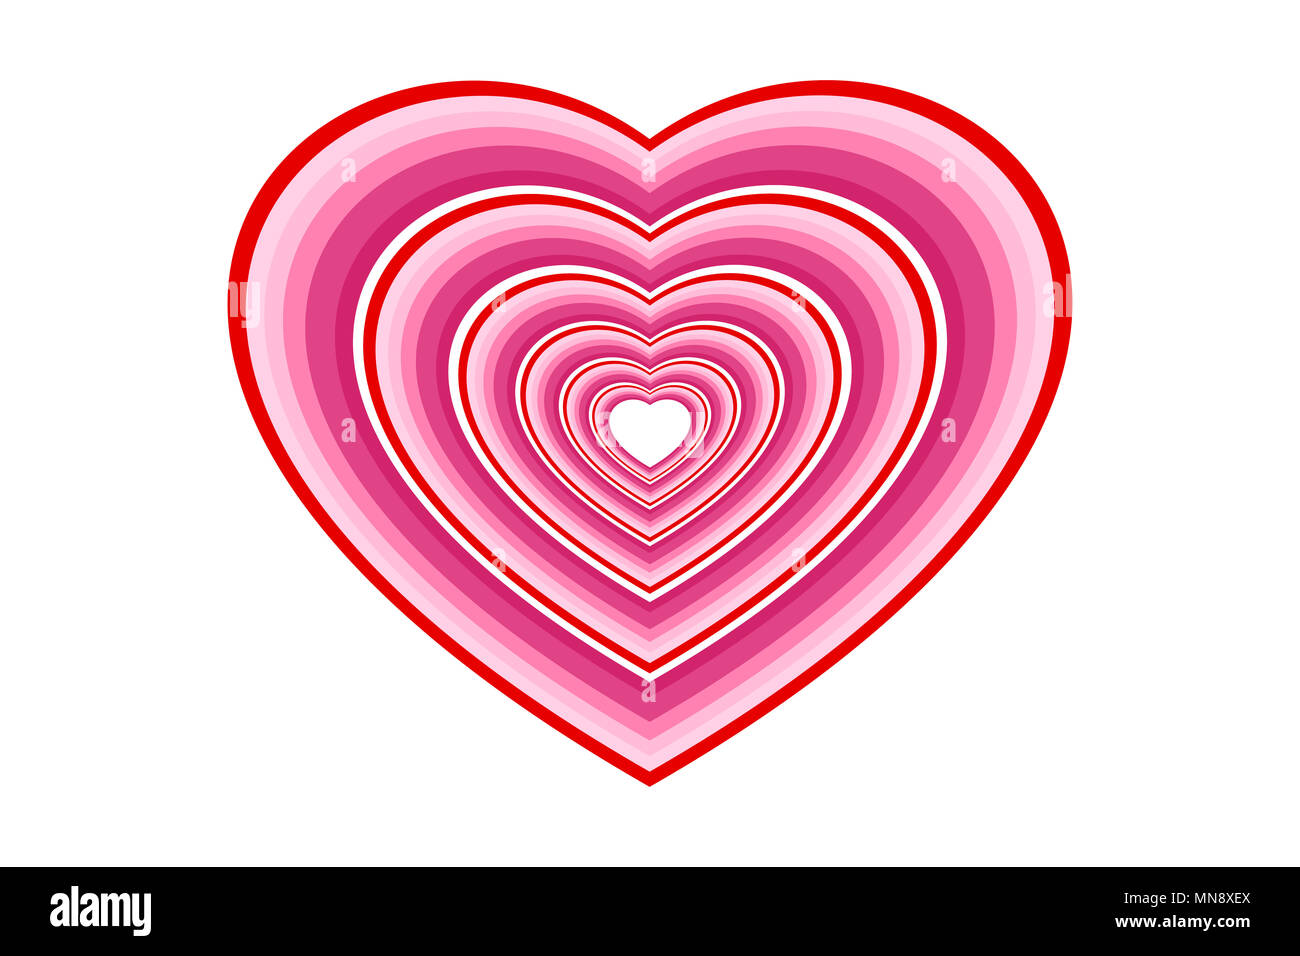 Hearts In Multi Layered Pink Tone And Red Outlines Concepts Of Love